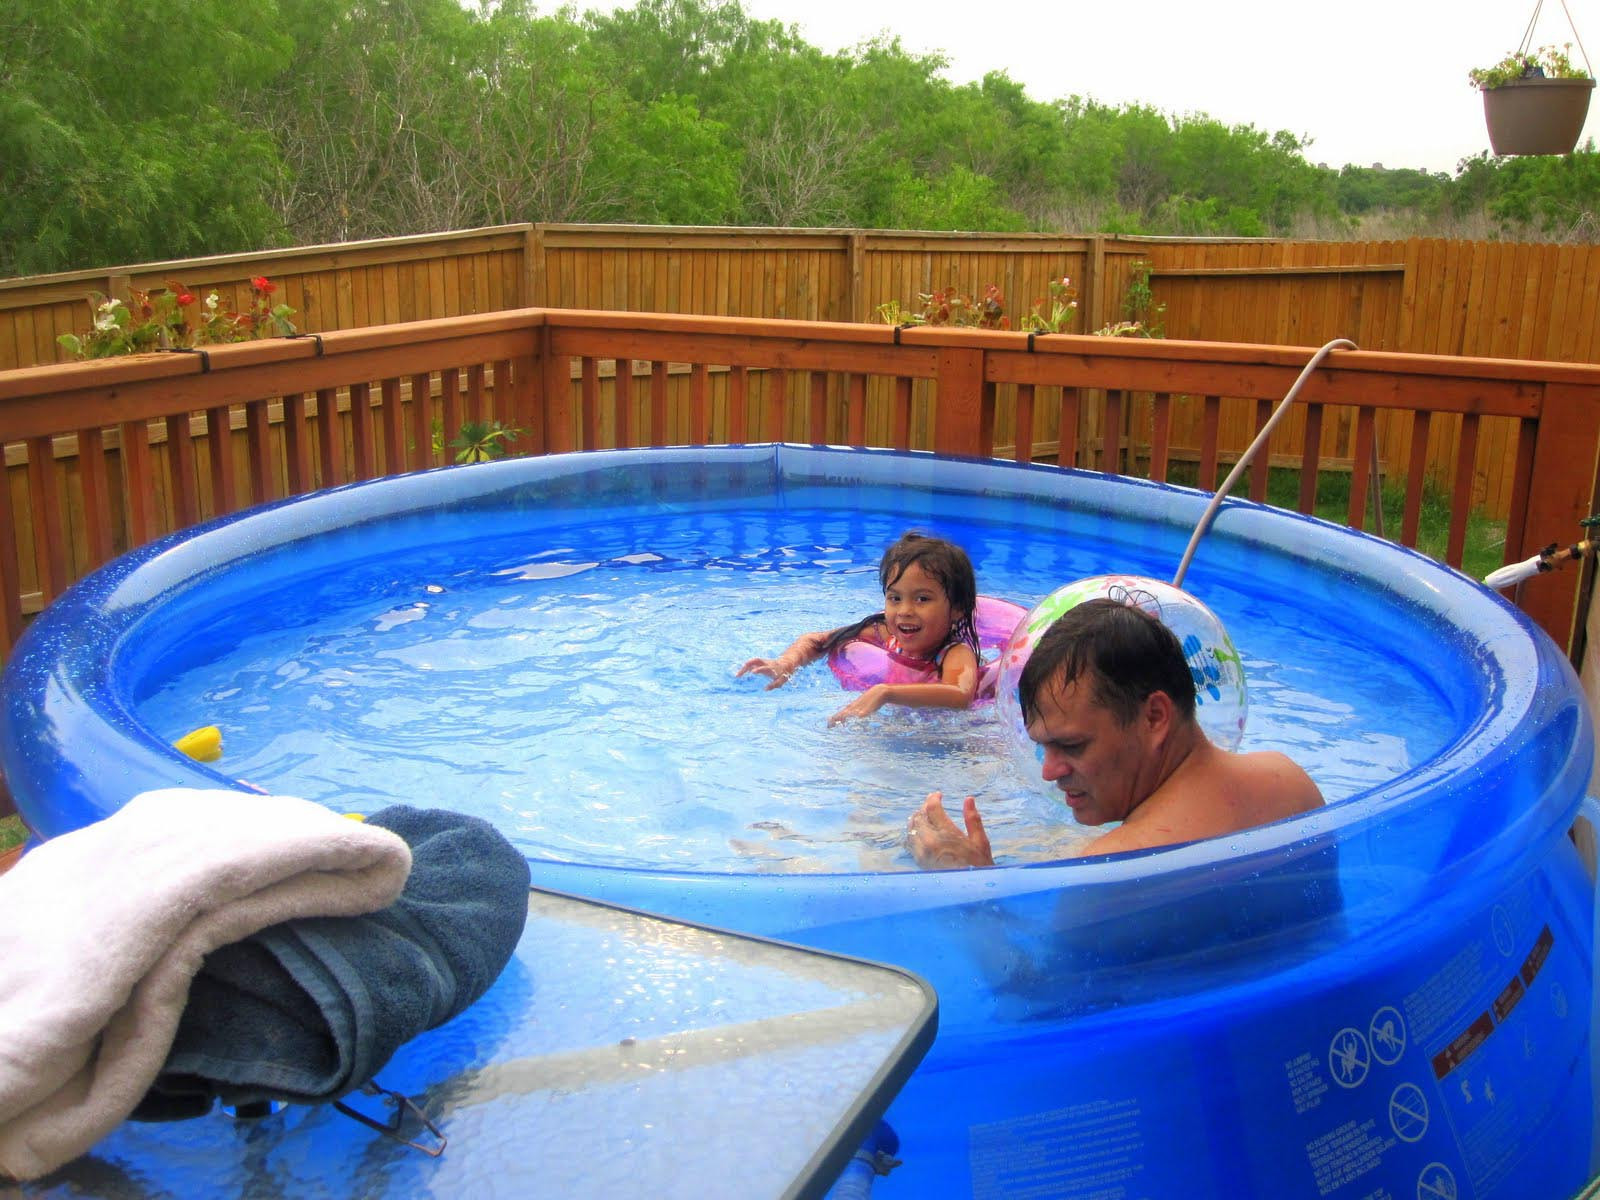 Kids Outdoor Swimming Pool  Portable Swimming Pools to Save You During Hot Summer Days